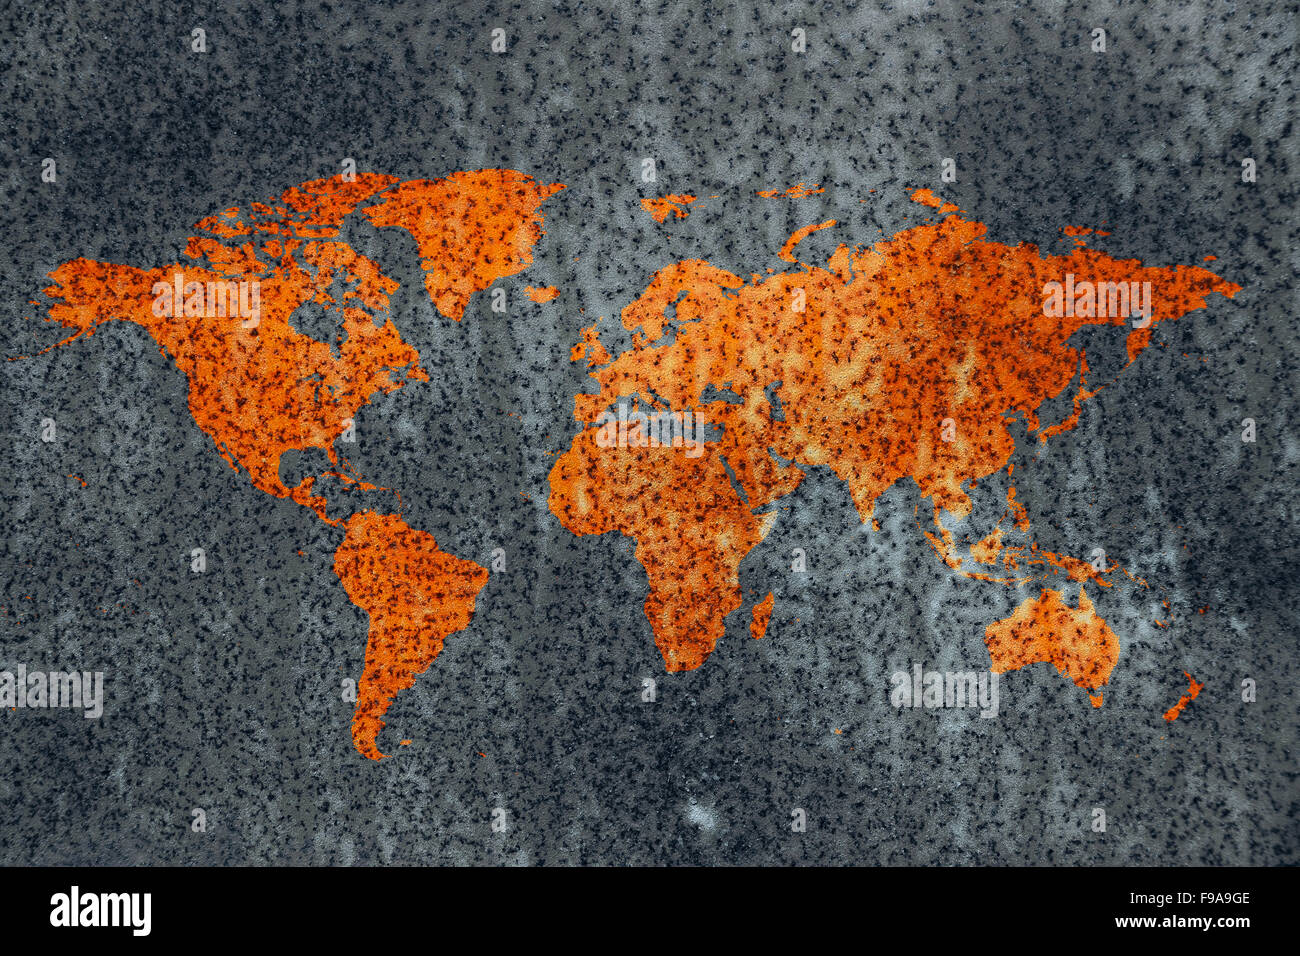 World decay world map corrosion stained rusty metal surface out of world decay world map corrosion stained rusty metal surface out of cold neutral grey background gumiabroncs Images